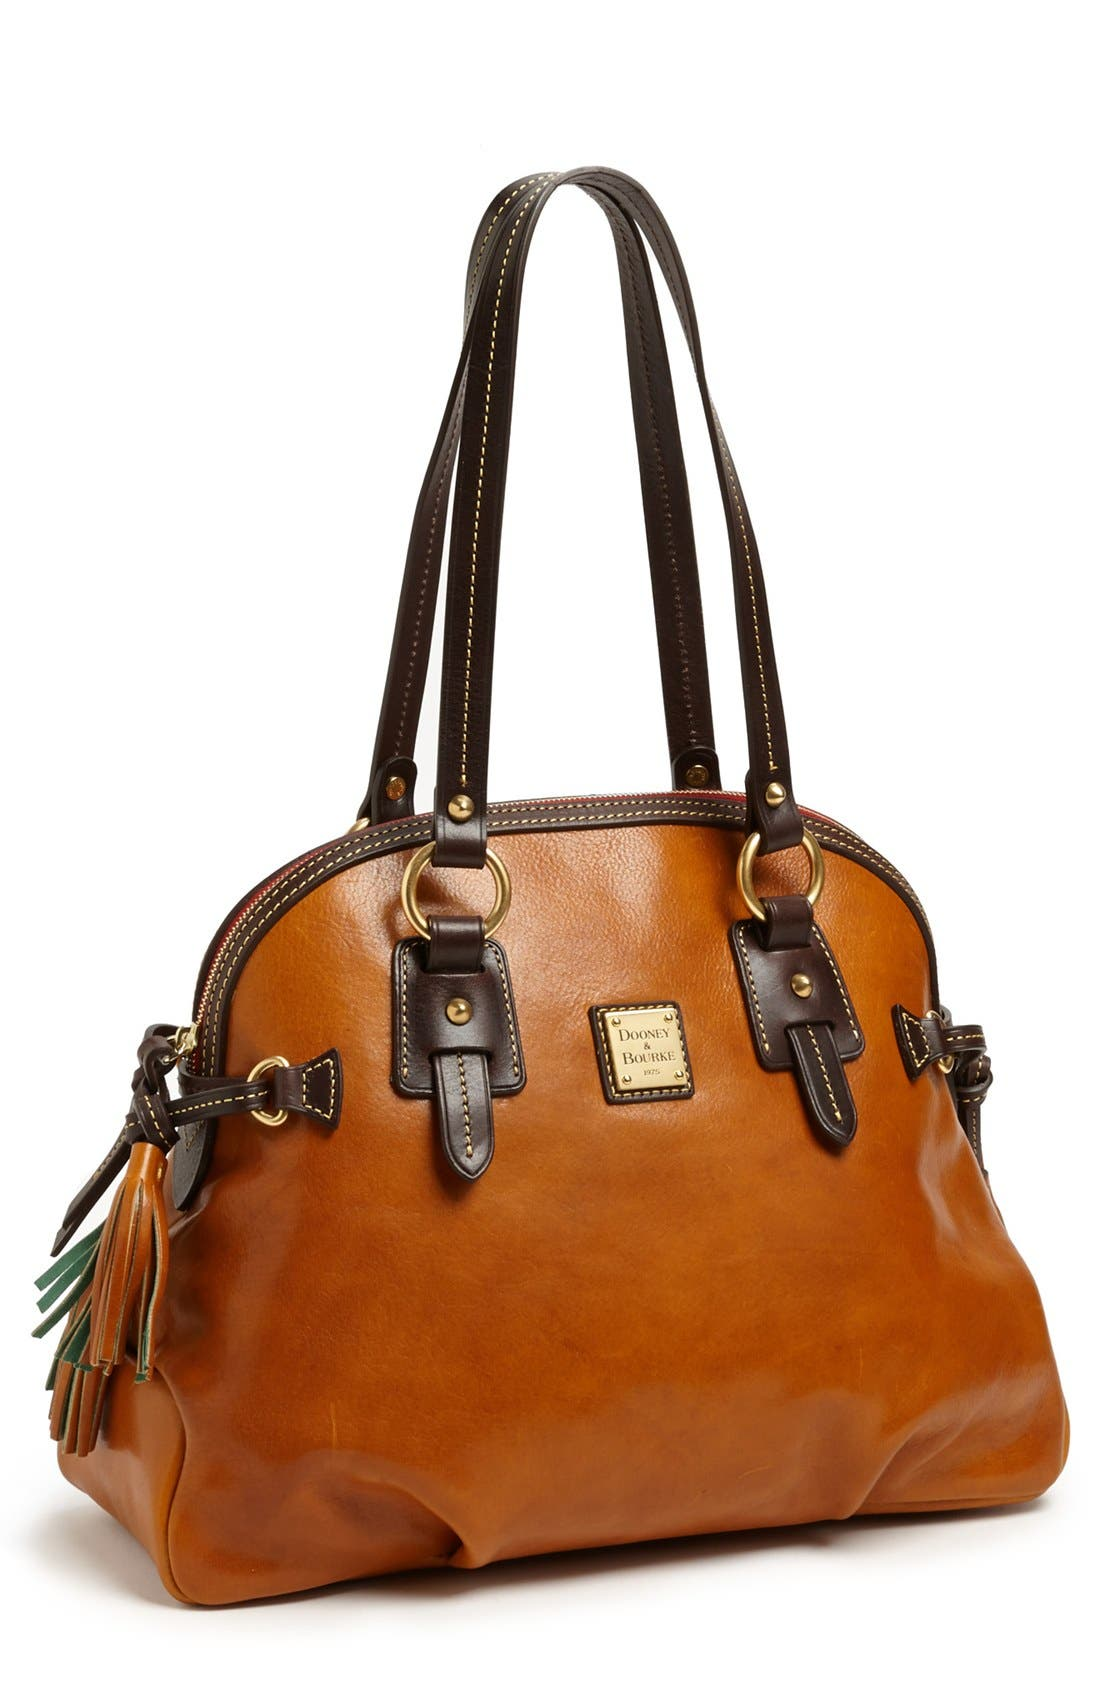 Alternate Image 1 Selected - Dooney & Bourke Leather Dome Satchel